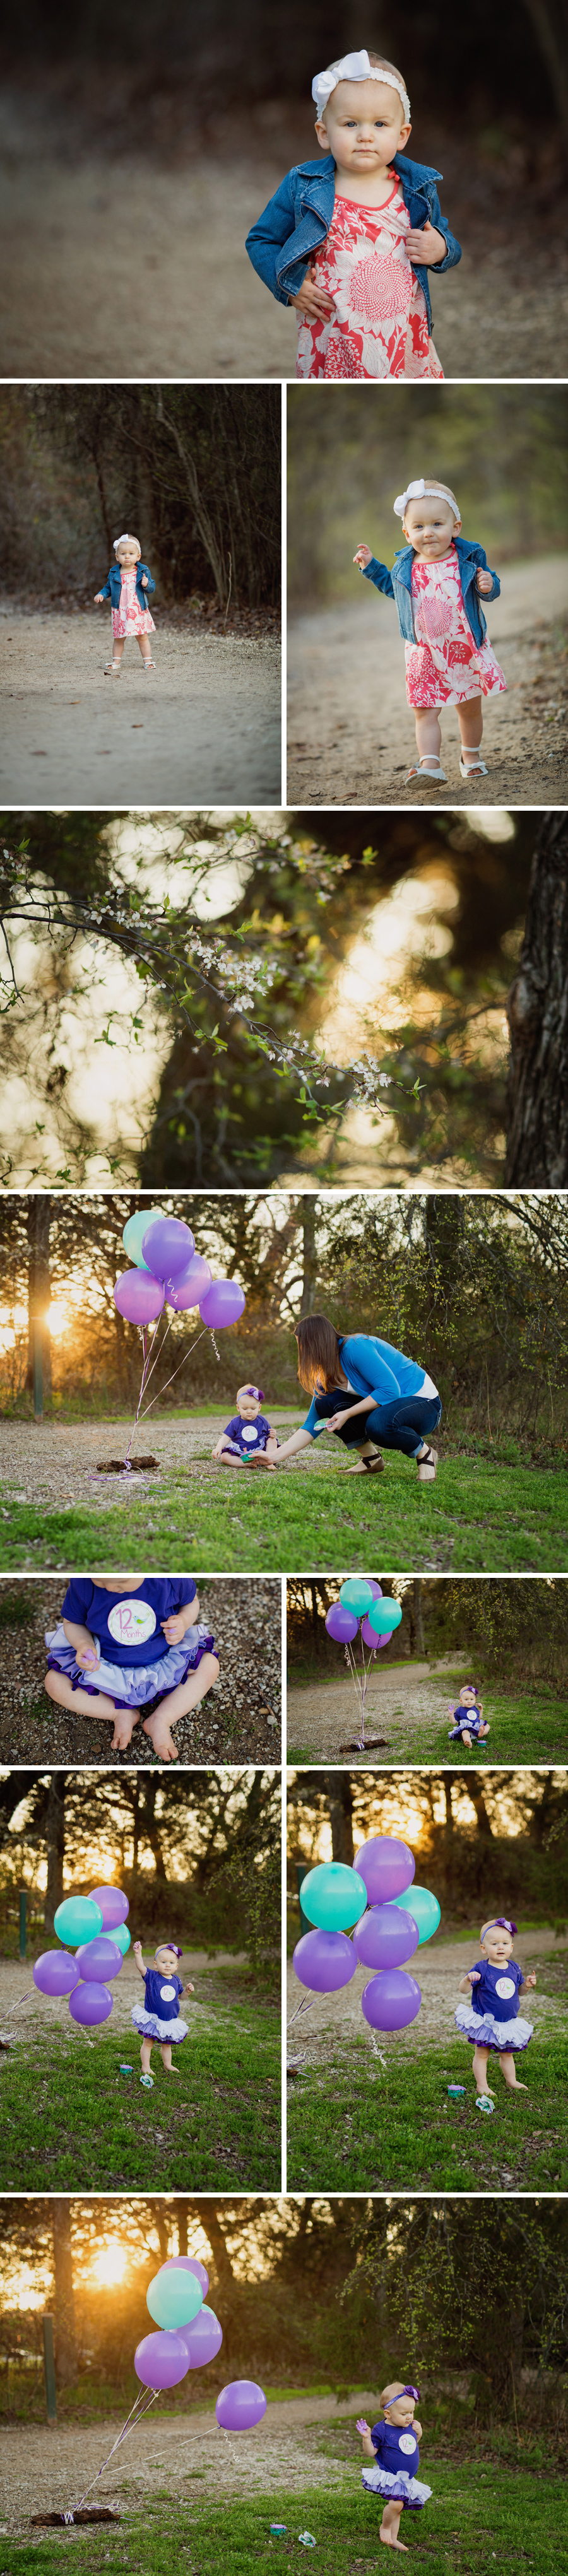 Dallas-Baby-PhotographerG003